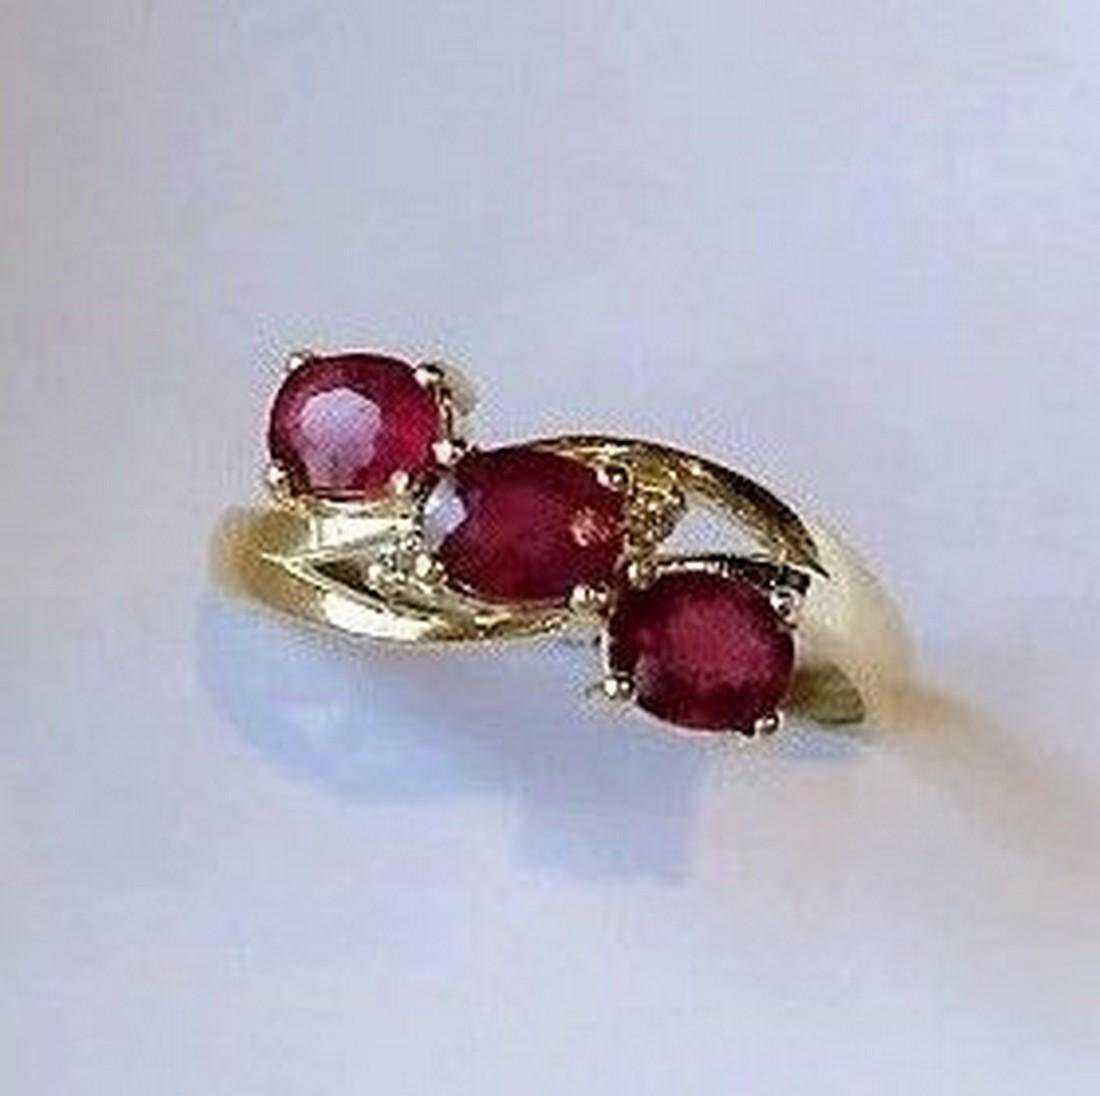 Ring New Ruby Trilogy with 2 Diamonds 14K Gold Made in - 4